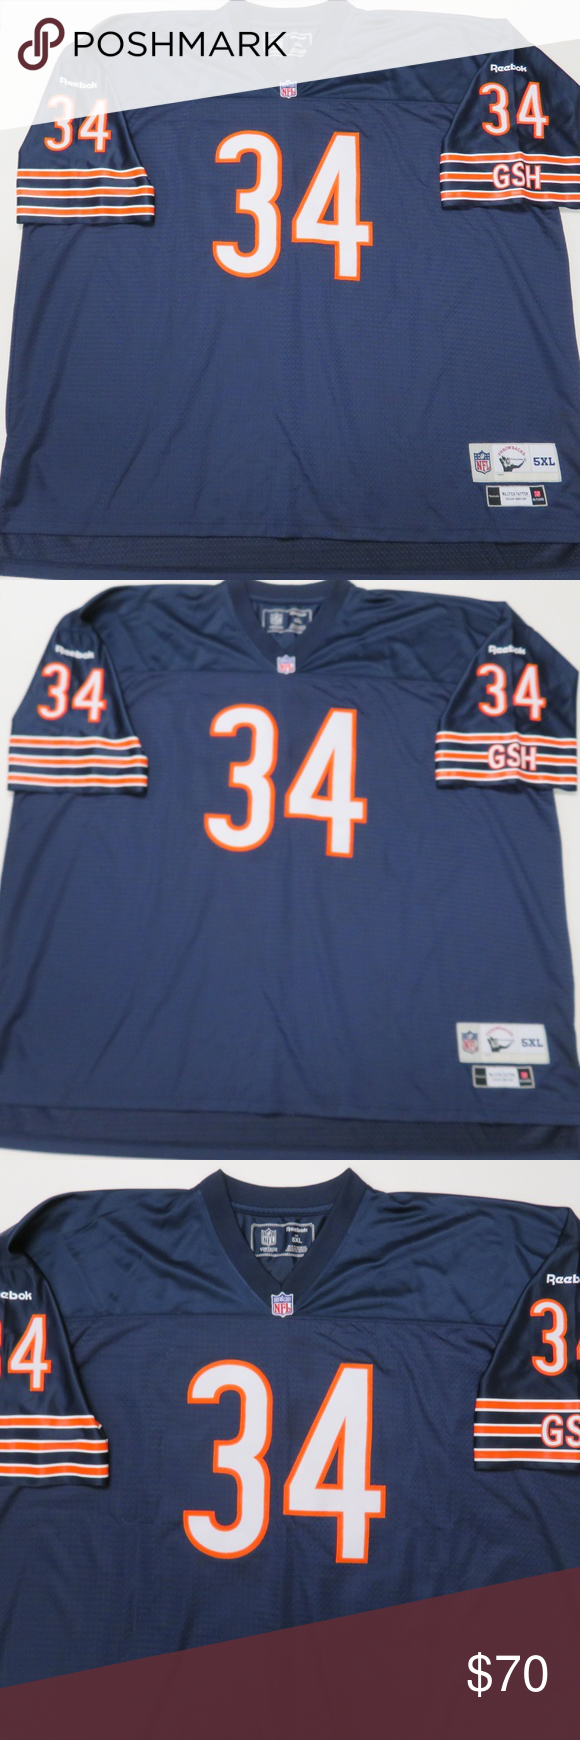 271a4cee7 Chicago Bears Walter Payton Throwback Jersey Reebok Vintage Collection  Throwbacks Chicago Bears Walter Payton  34